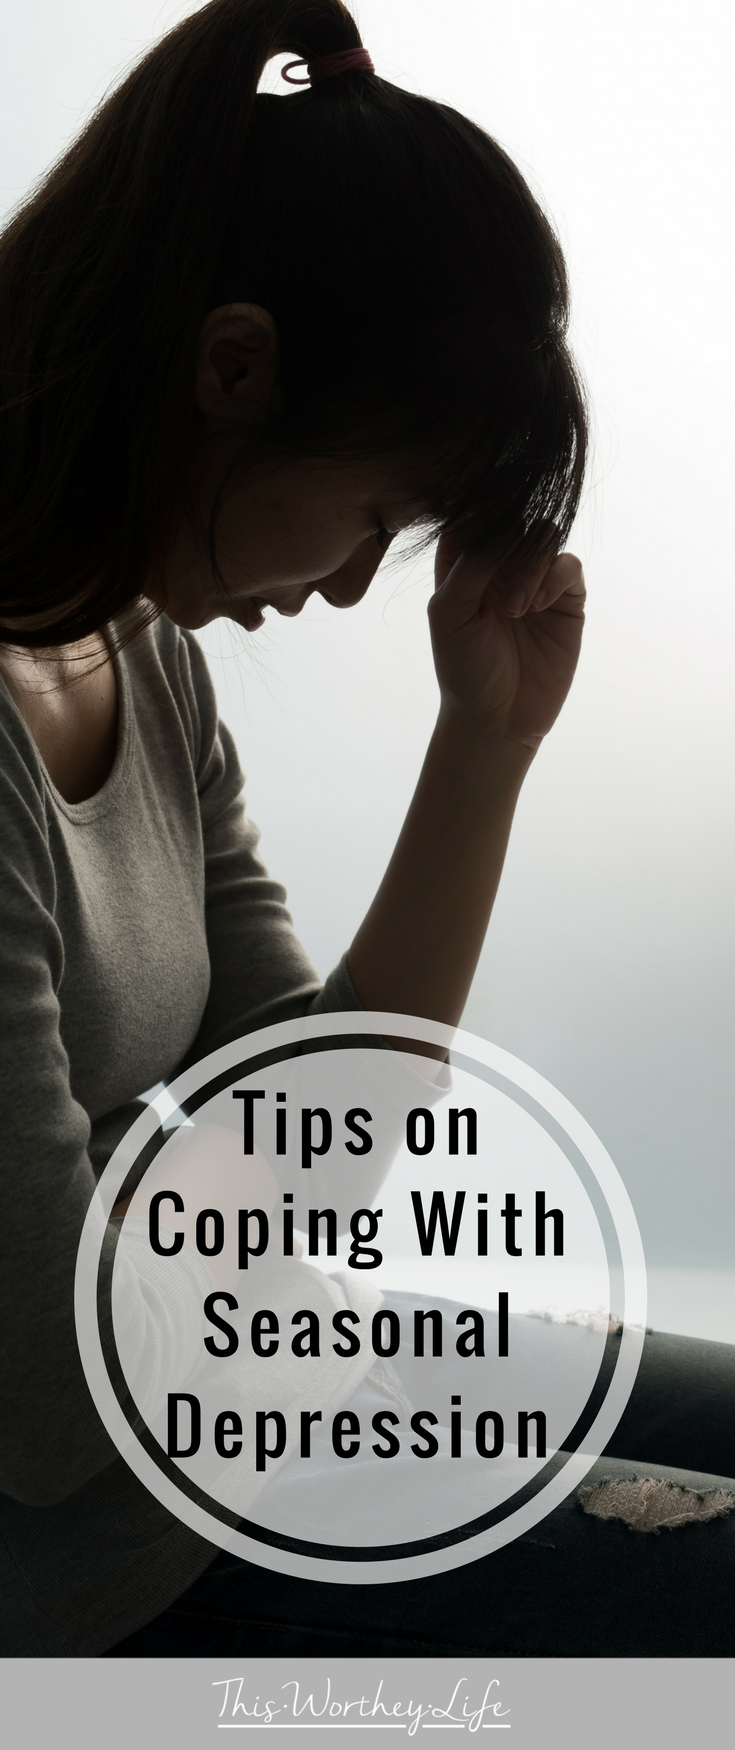 Seasonal Depression is something many people deal with- and don't know it. I'm sharing some easy ways for coping with seasonal depression and how you can get through it each season!